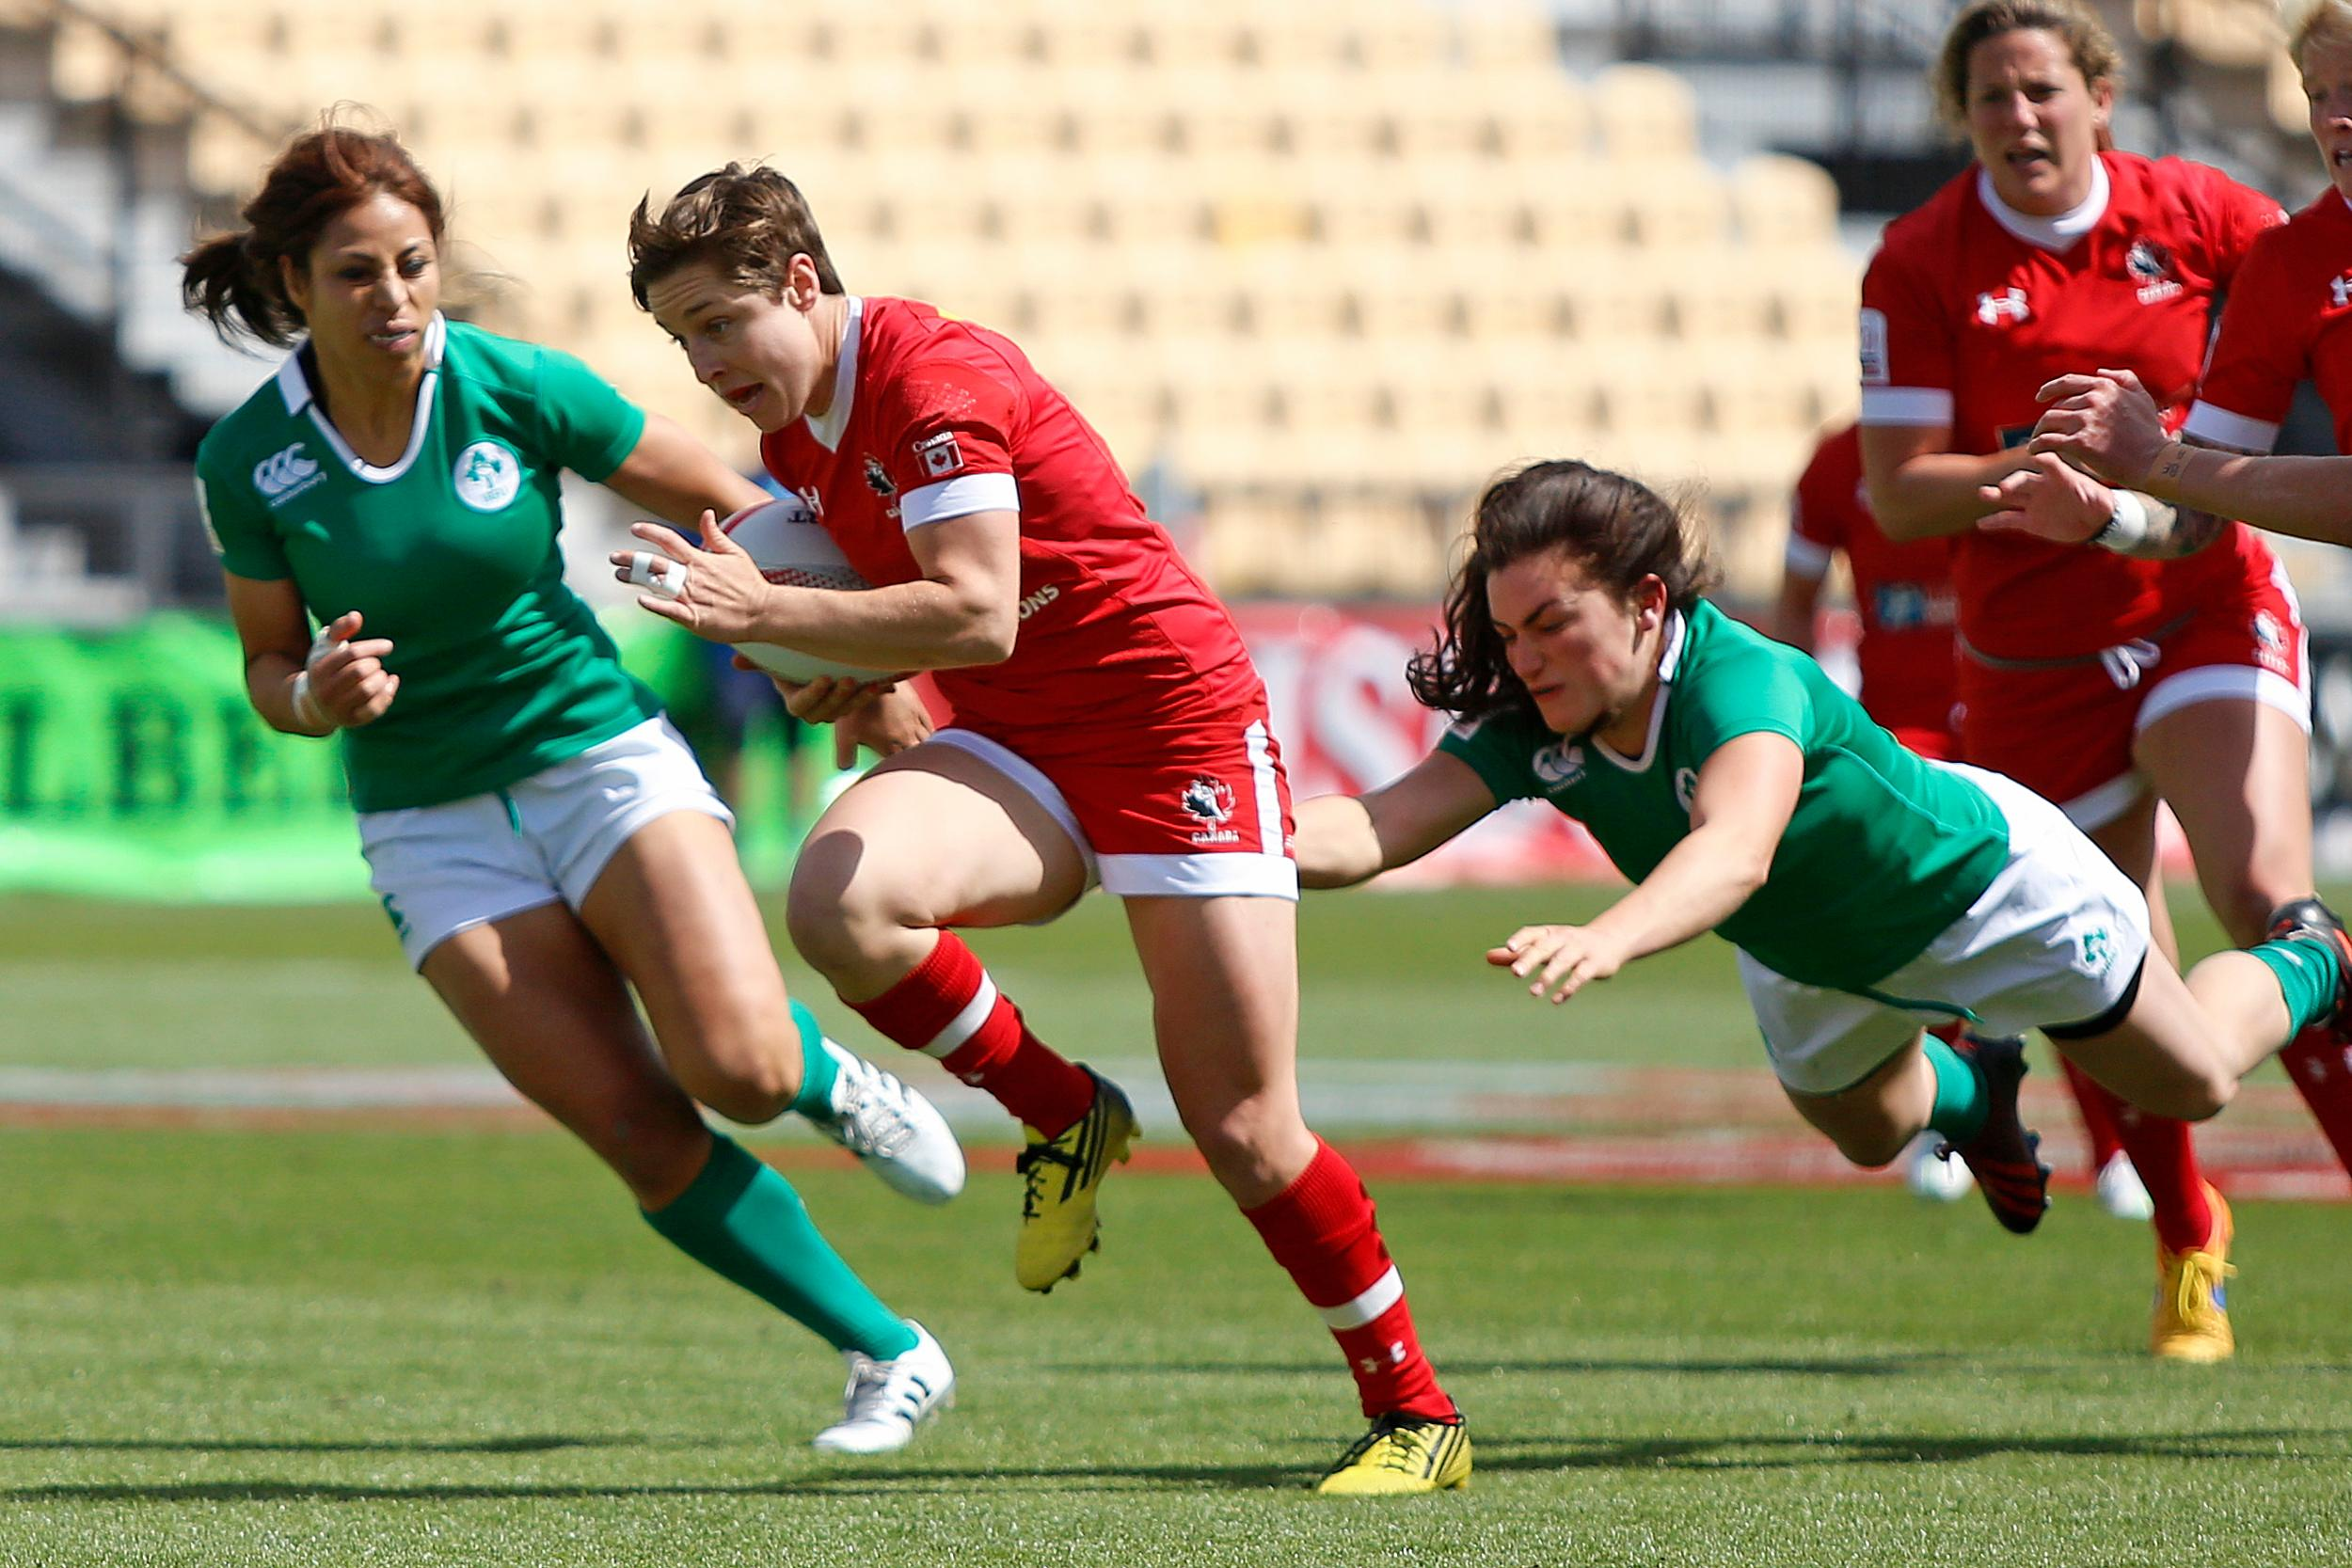 Ghislaine Landry breaks away from a tackle at Atlanta 7s (Photo: Mike Lee @ KLC Fotos).